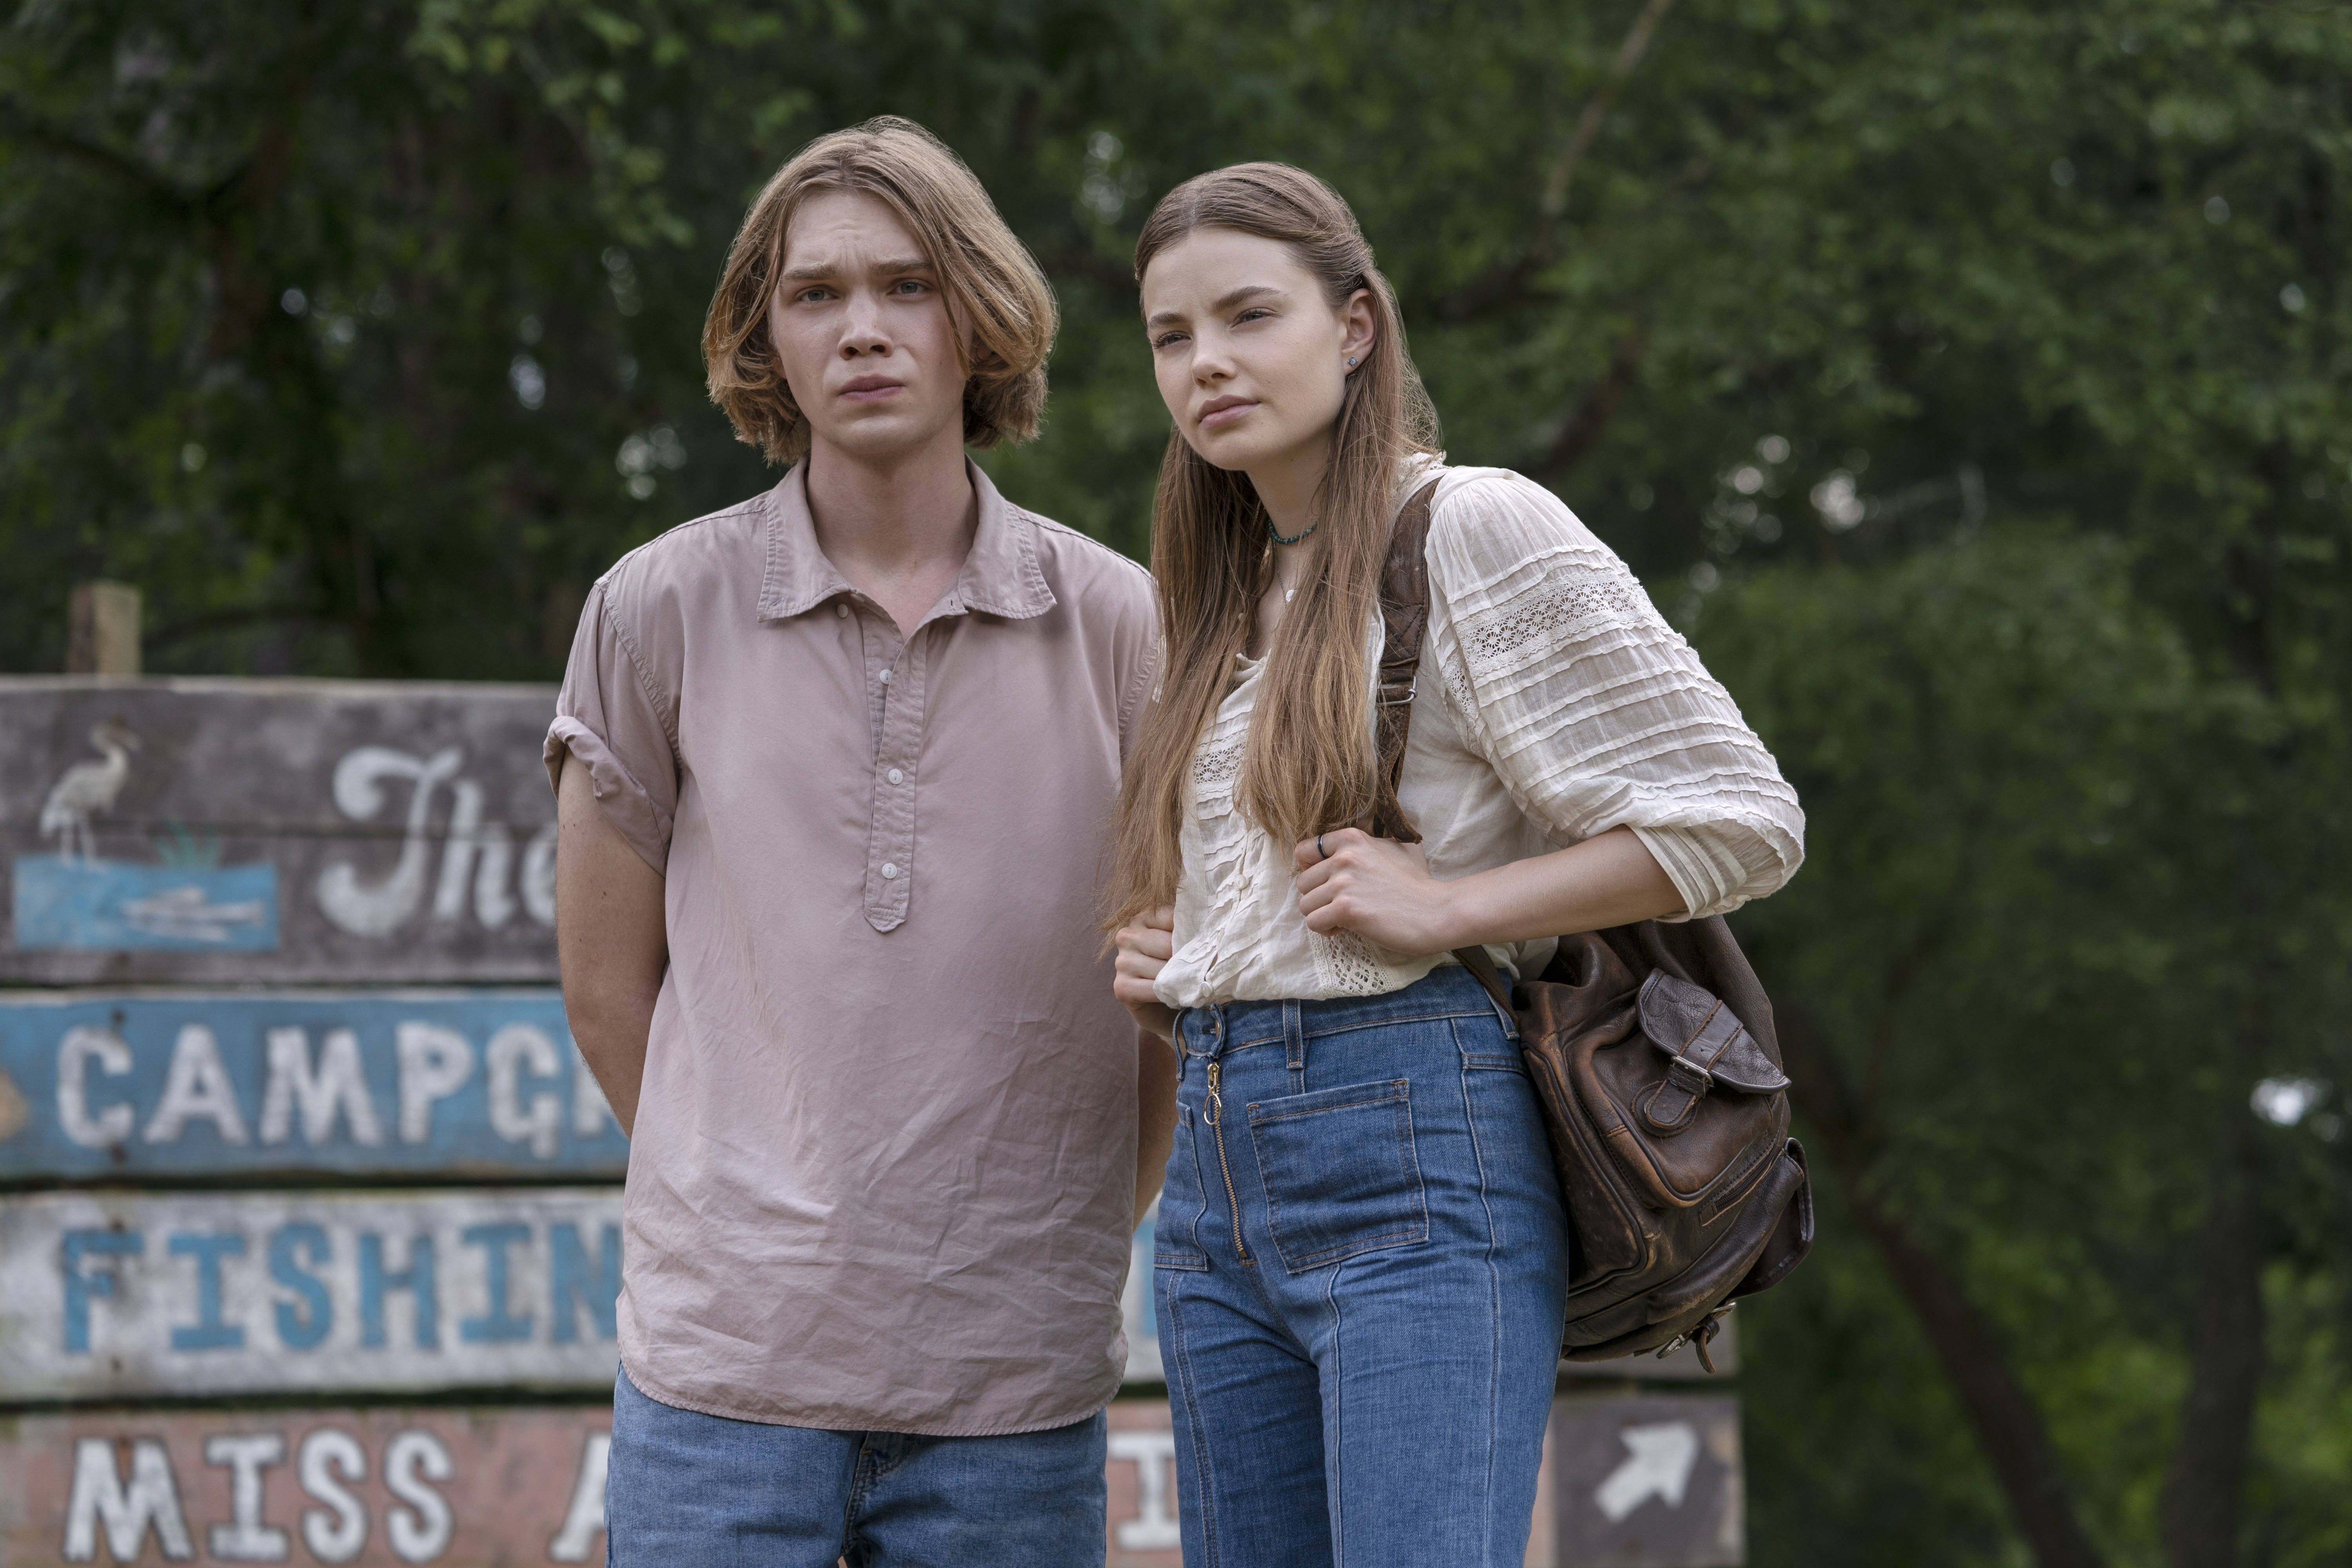 Will There Be A 'Looking for Alaska' Season 2?